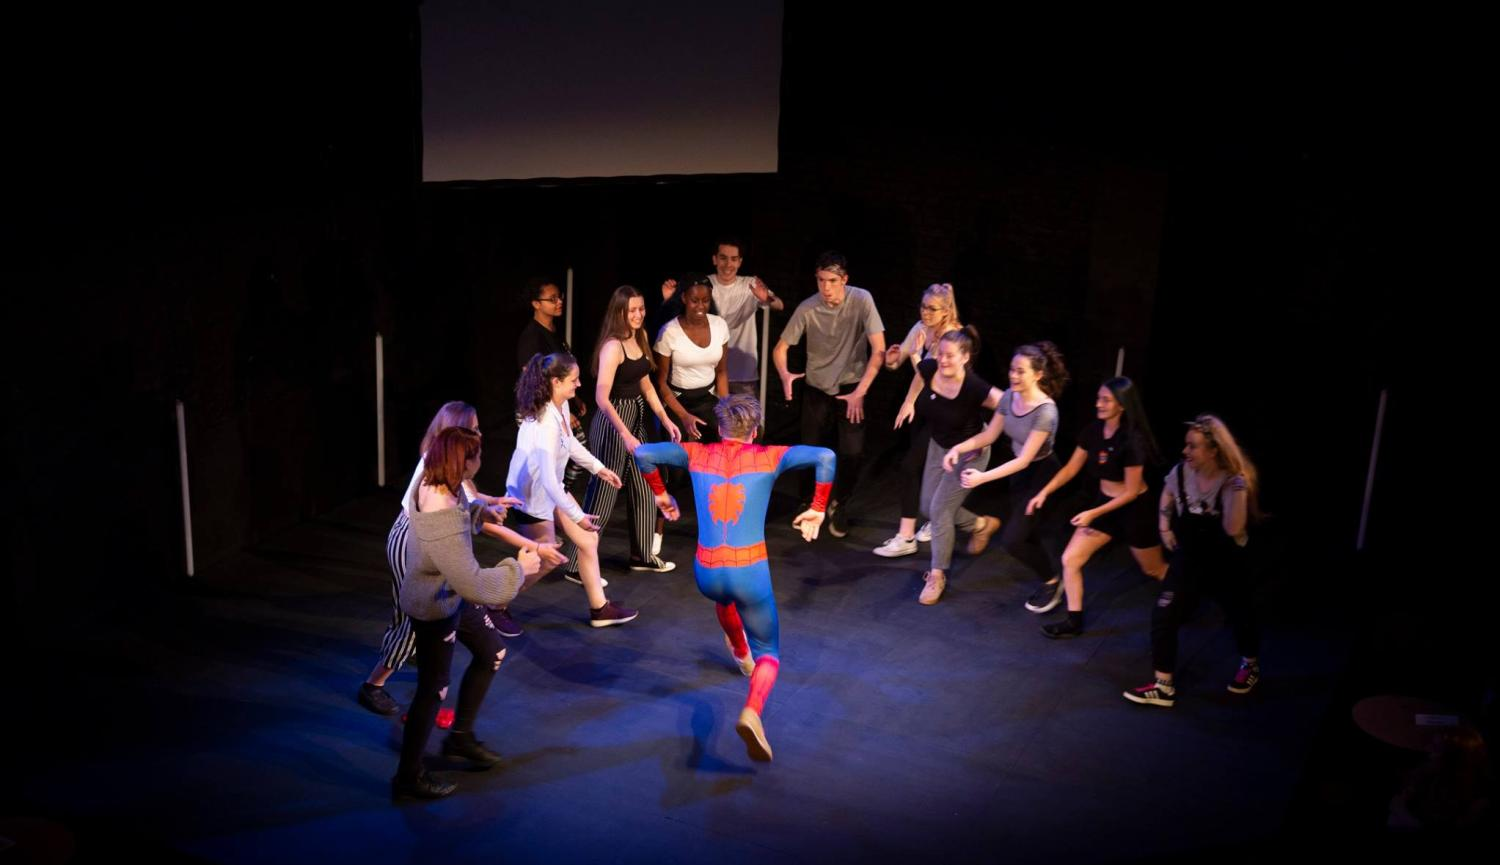 Young People in a circle and young person in spiderman costume